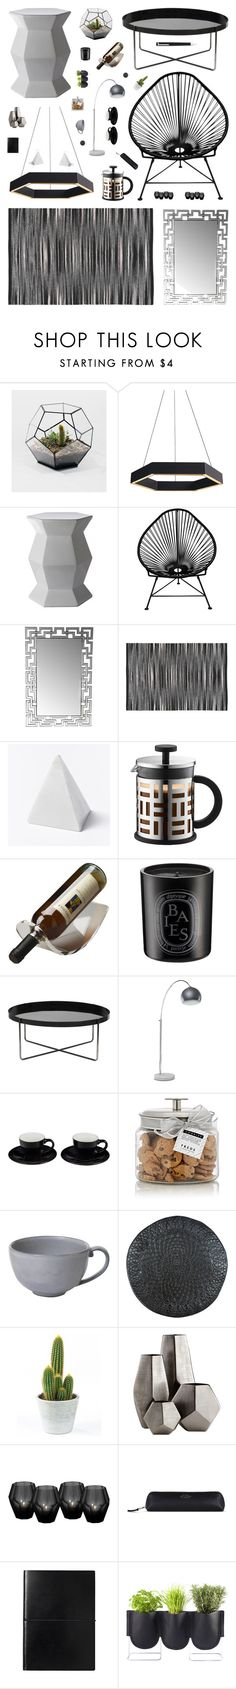 """""""Black, White & Gray Geometric Decor"""" by belenloperfido on Polyvore featuring interior, interiors, interior design, home, home decor, interior decorating, Innit, Privilege, West Elm and Bodum"""